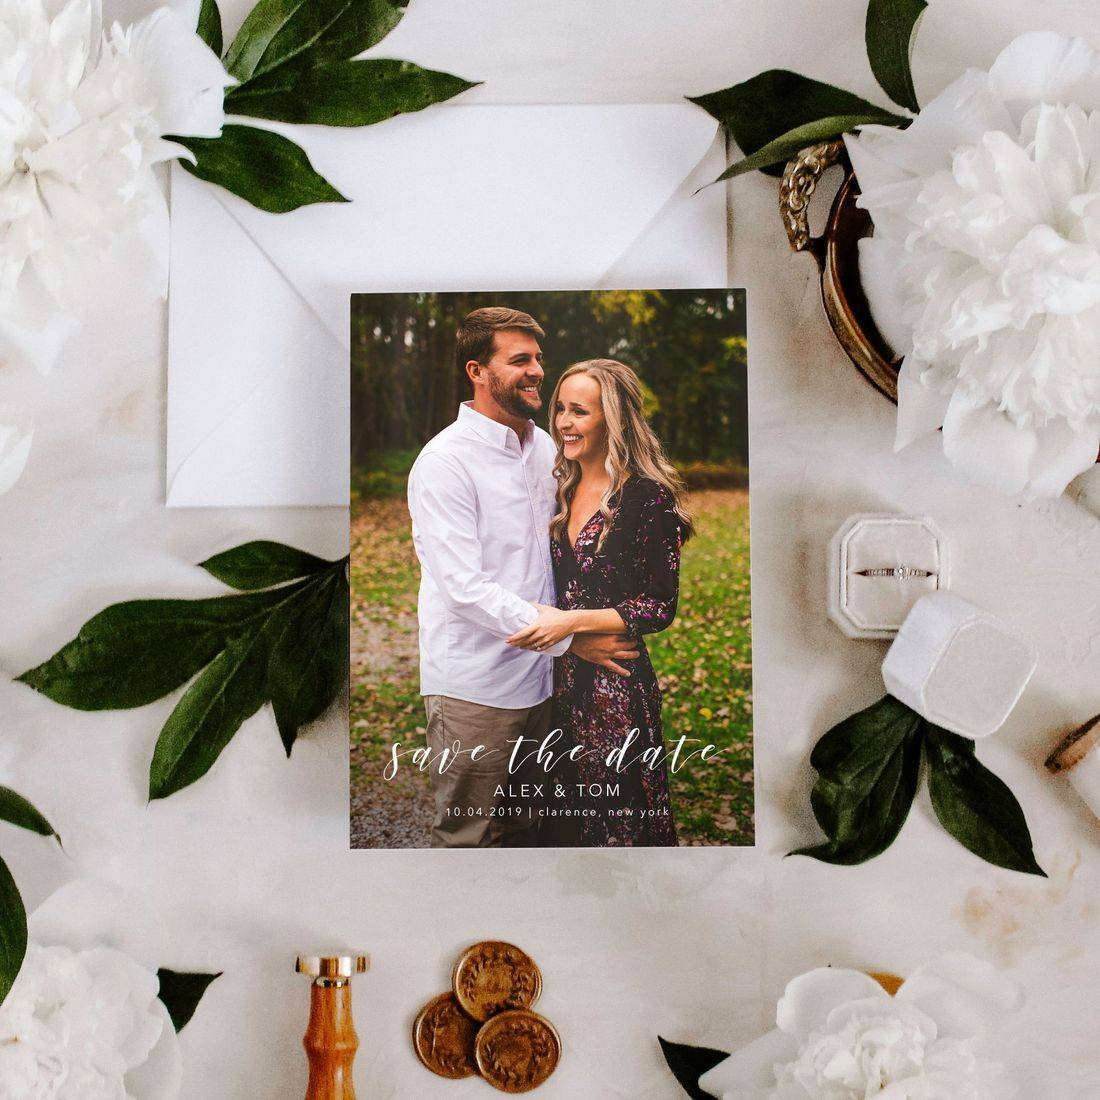 Engagement photo save the date flat lay with peonies